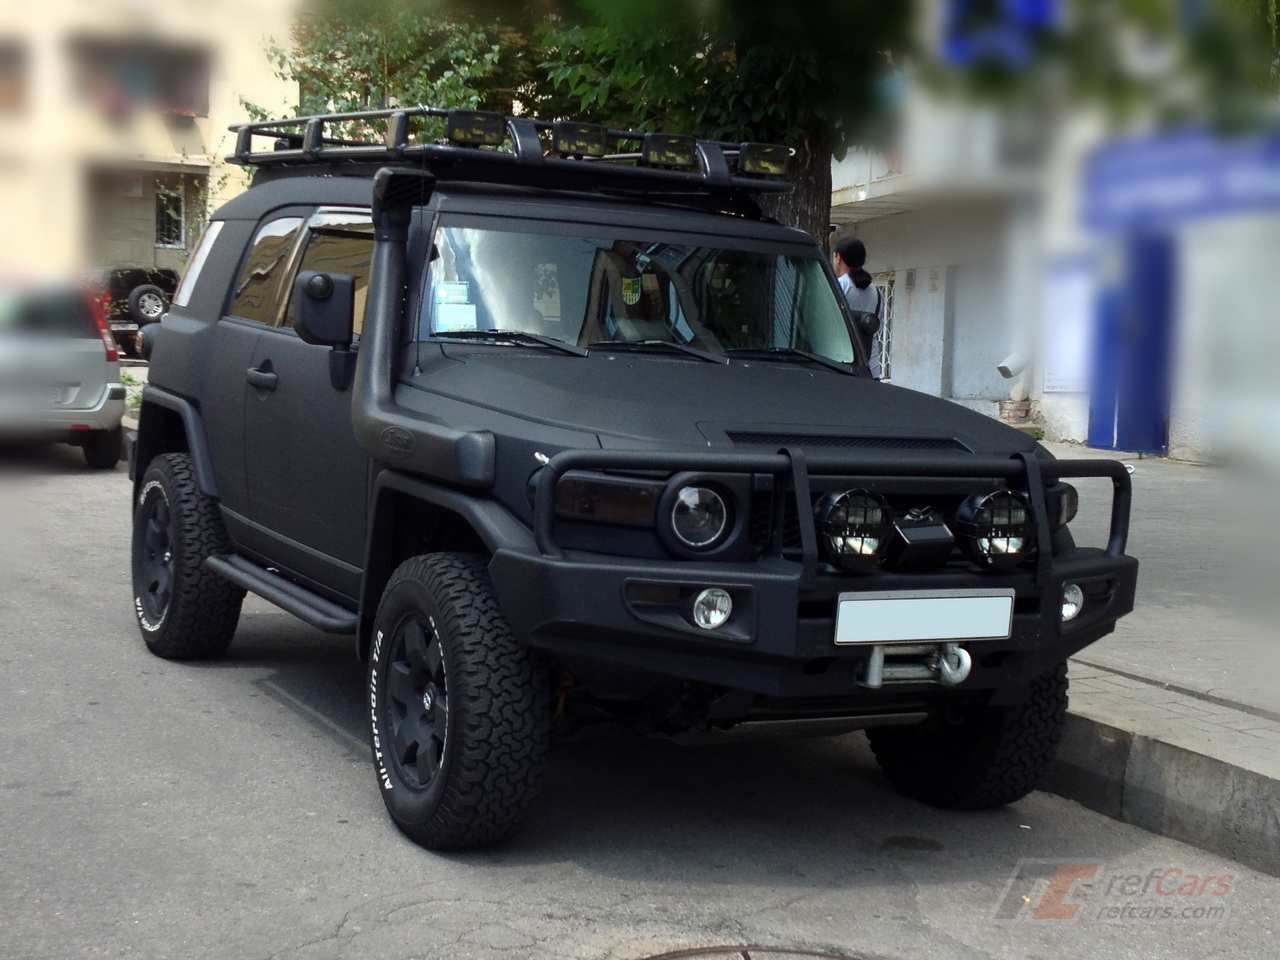 refcars matte black tuning toyota fj cruiser. Black Bedroom Furniture Sets. Home Design Ideas